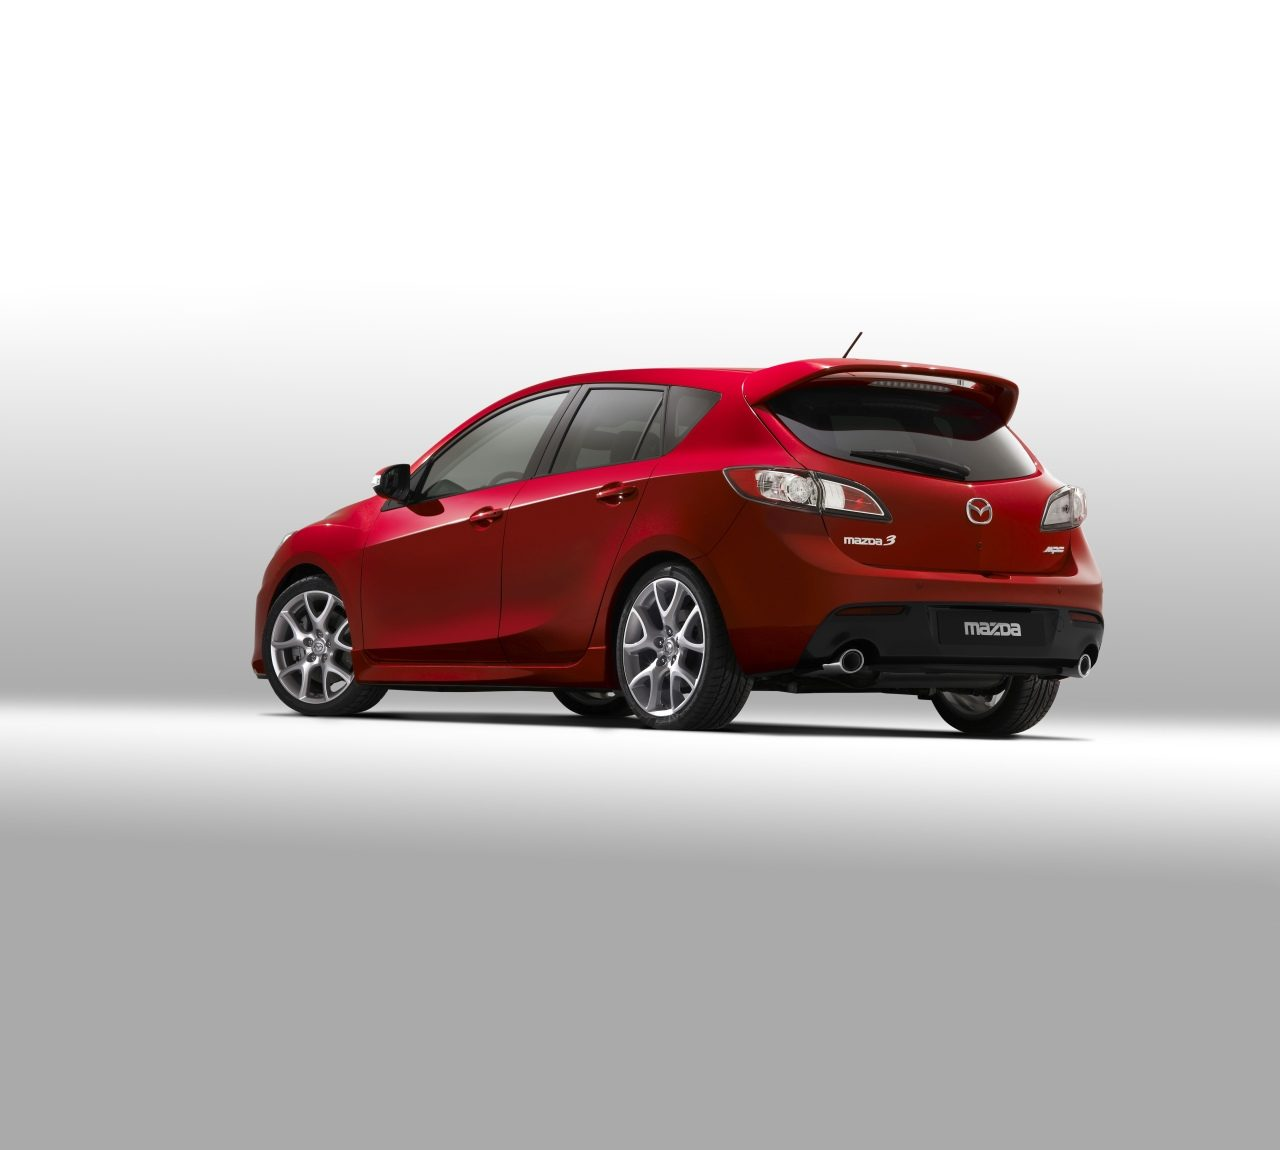 kies maar volvo c30 t5 r design of mazda 3 mps. Black Bedroom Furniture Sets. Home Design Ideas